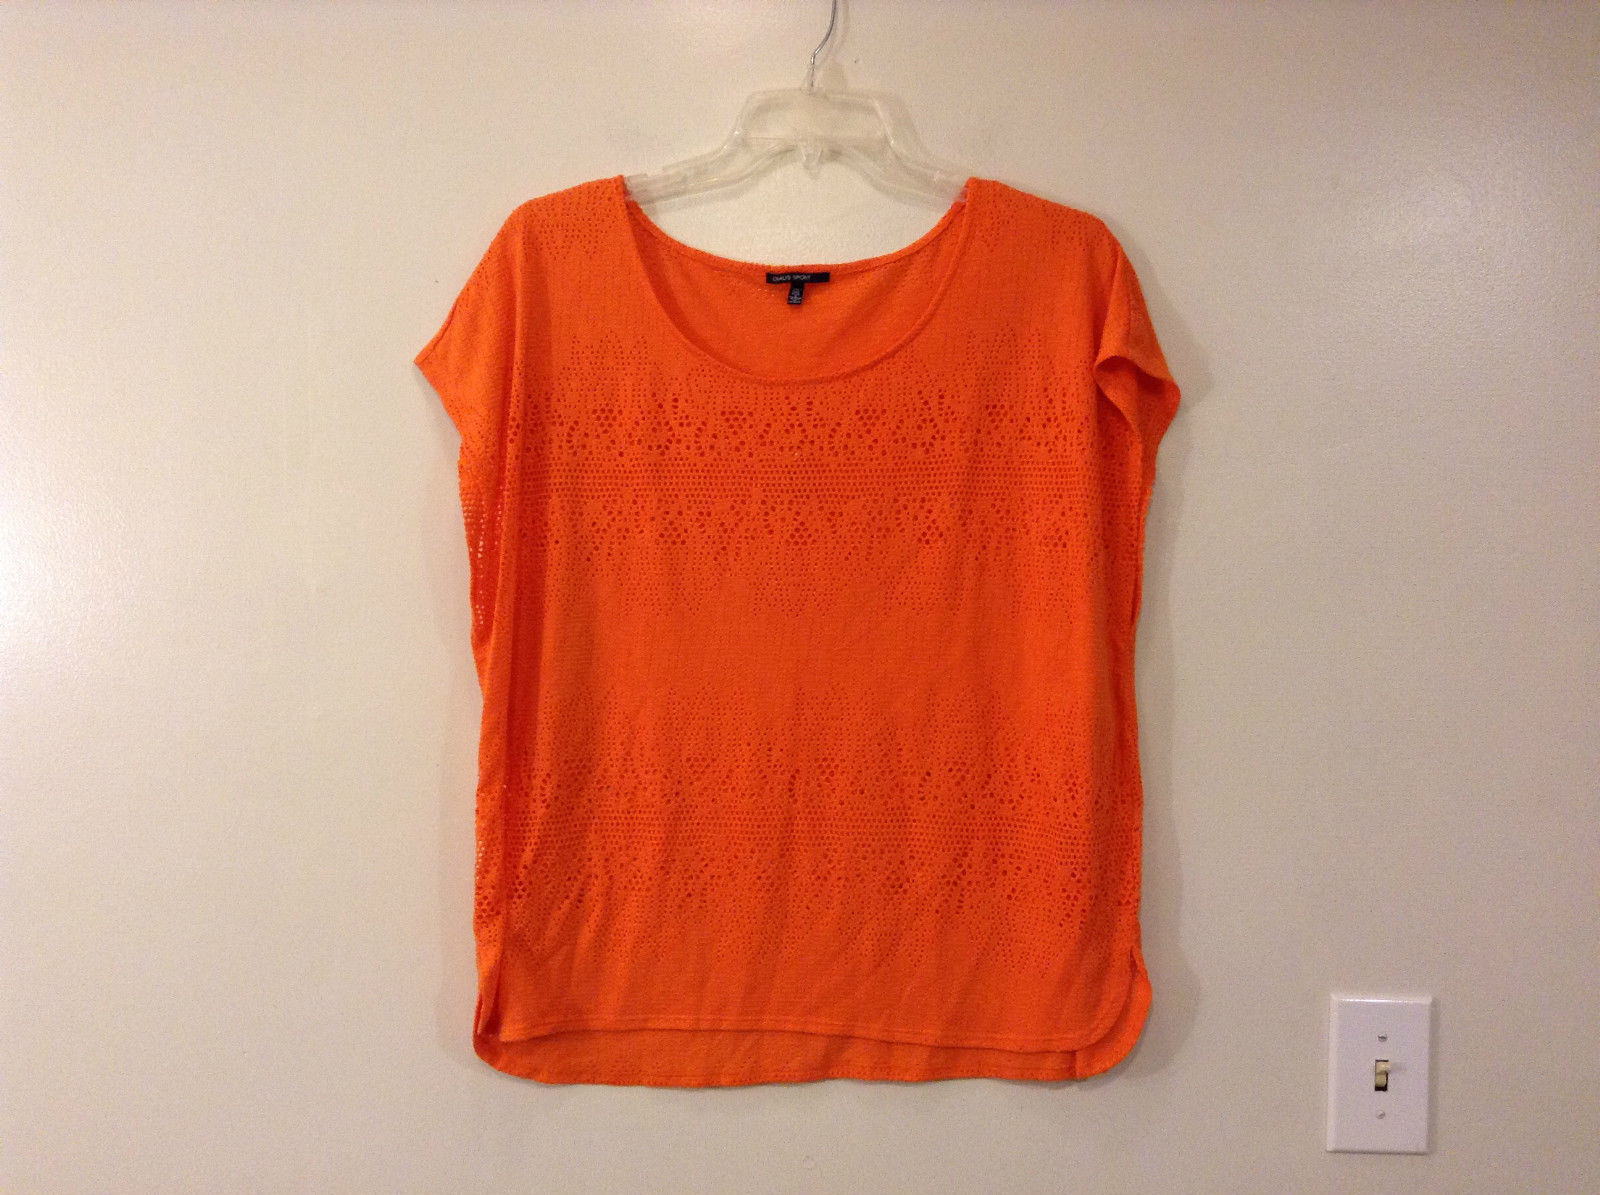 Orange Sleeveless Chaus Sport Top Cutout Fabric Boat Neck Size  XXL